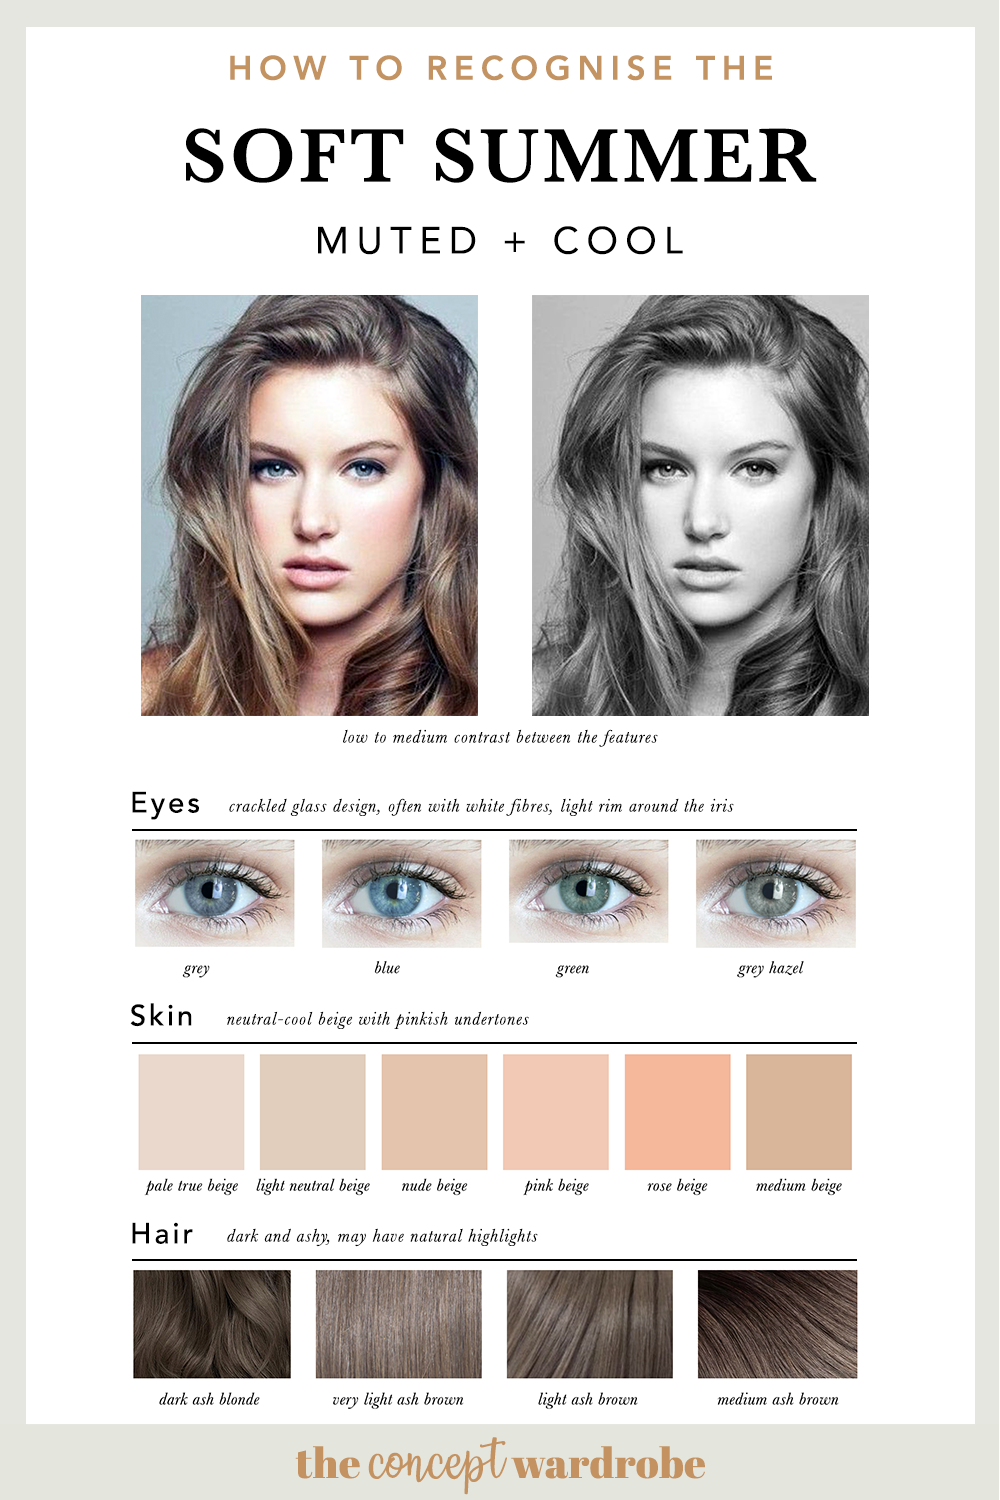 How To Recognise The Soft Summer Soft Summer Color Palette Soft Summer Color Analysis Summer